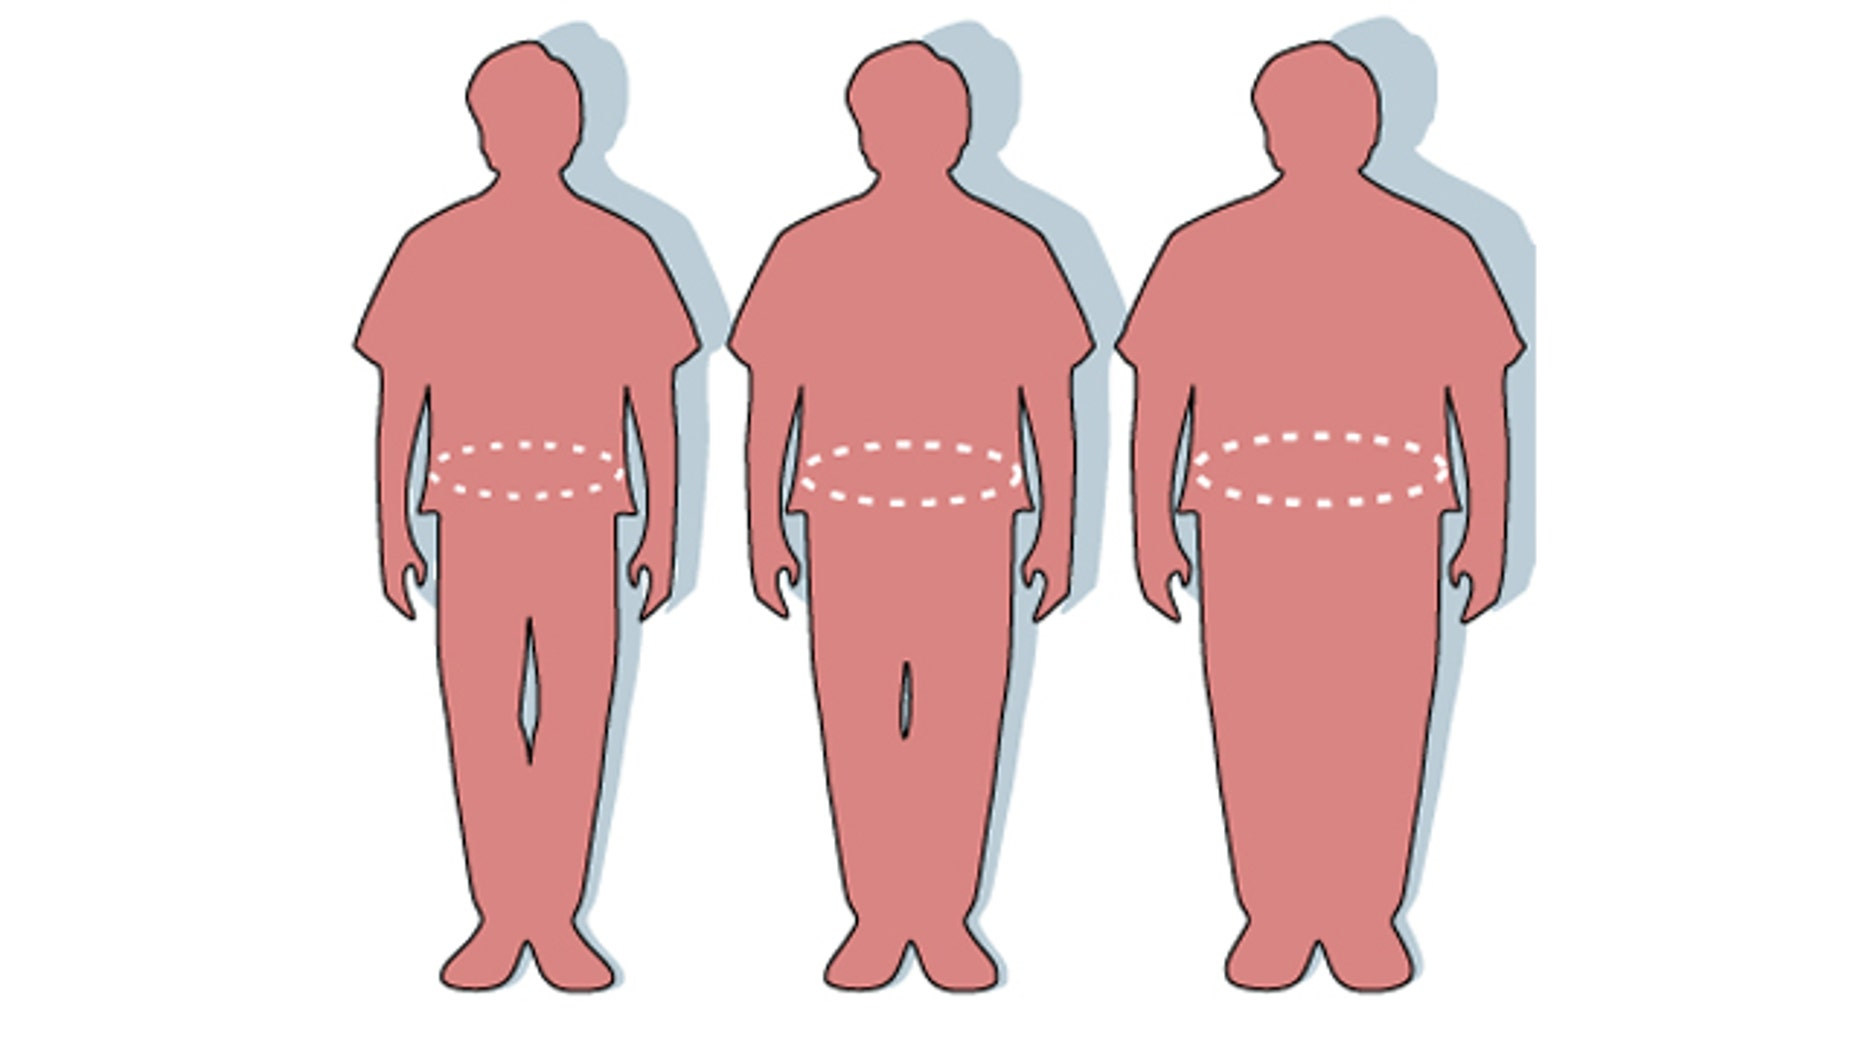 Your DNA may determine whether you are too thin, normal, or overweight.